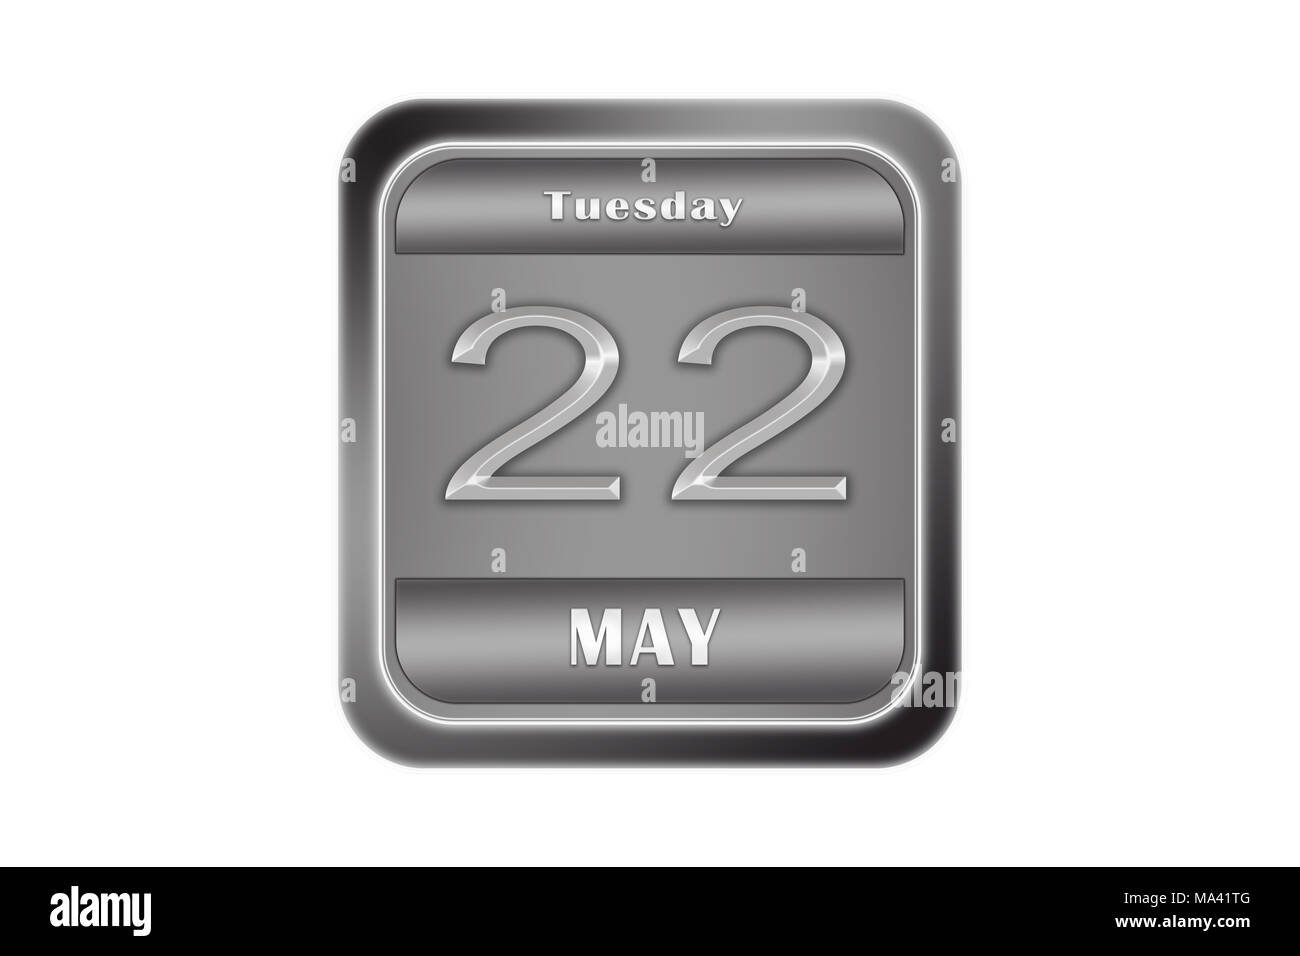 Date may 22, Tuesday written on a metal plate - Stock Image